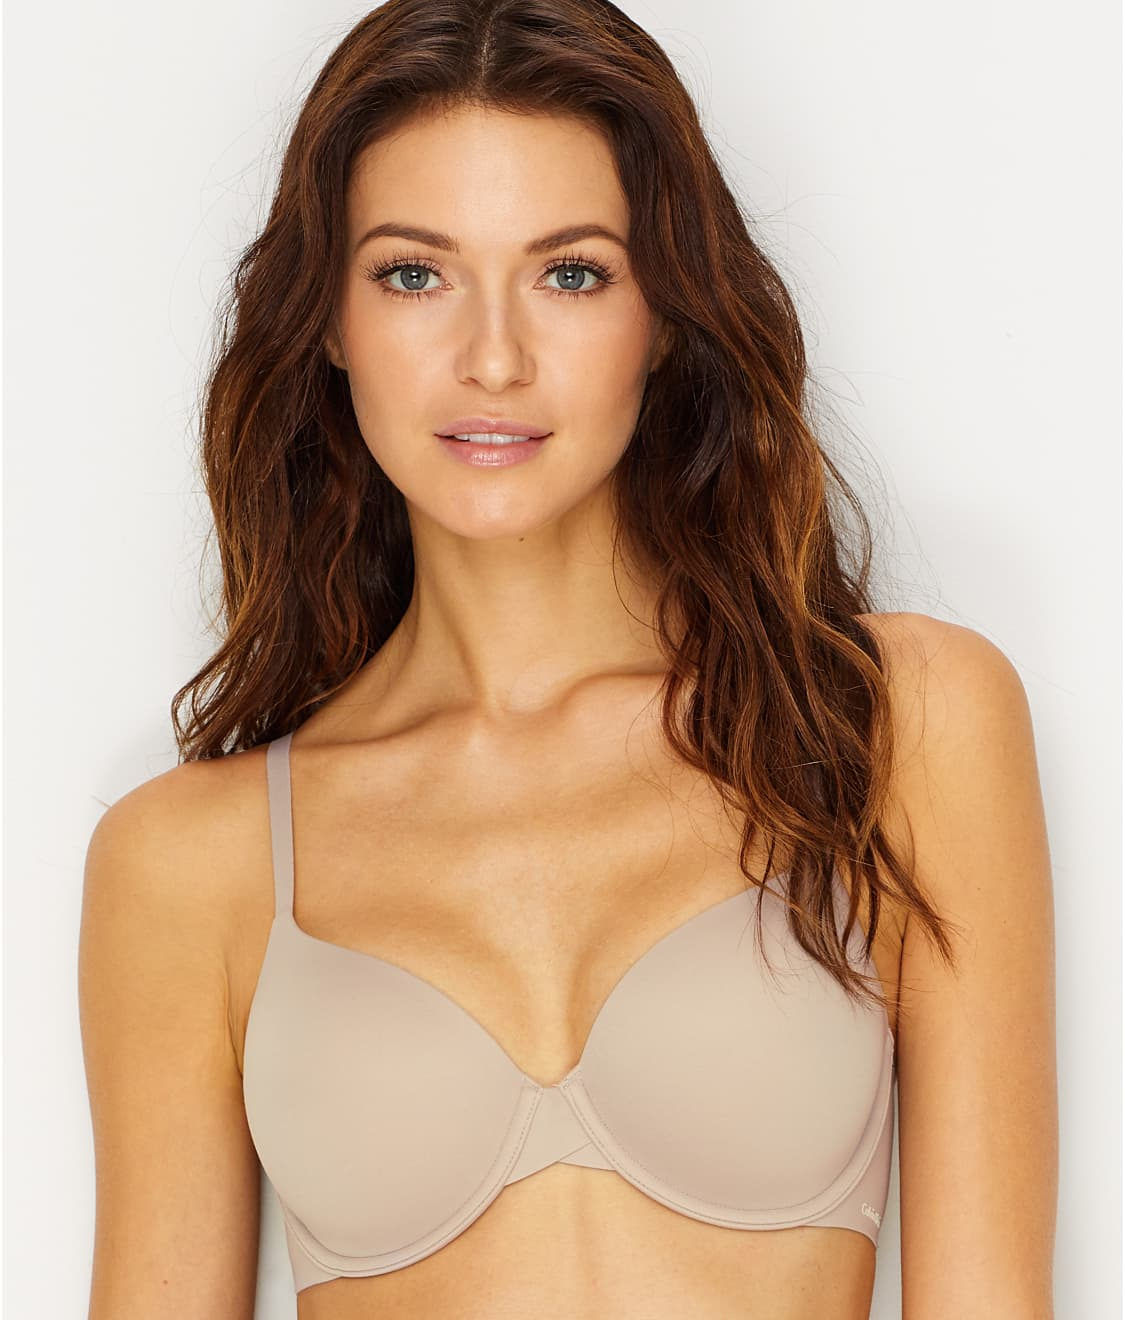 a902f6b899 See Perfectly Fit Modern T-Shirt Bra in Fresh Taupe